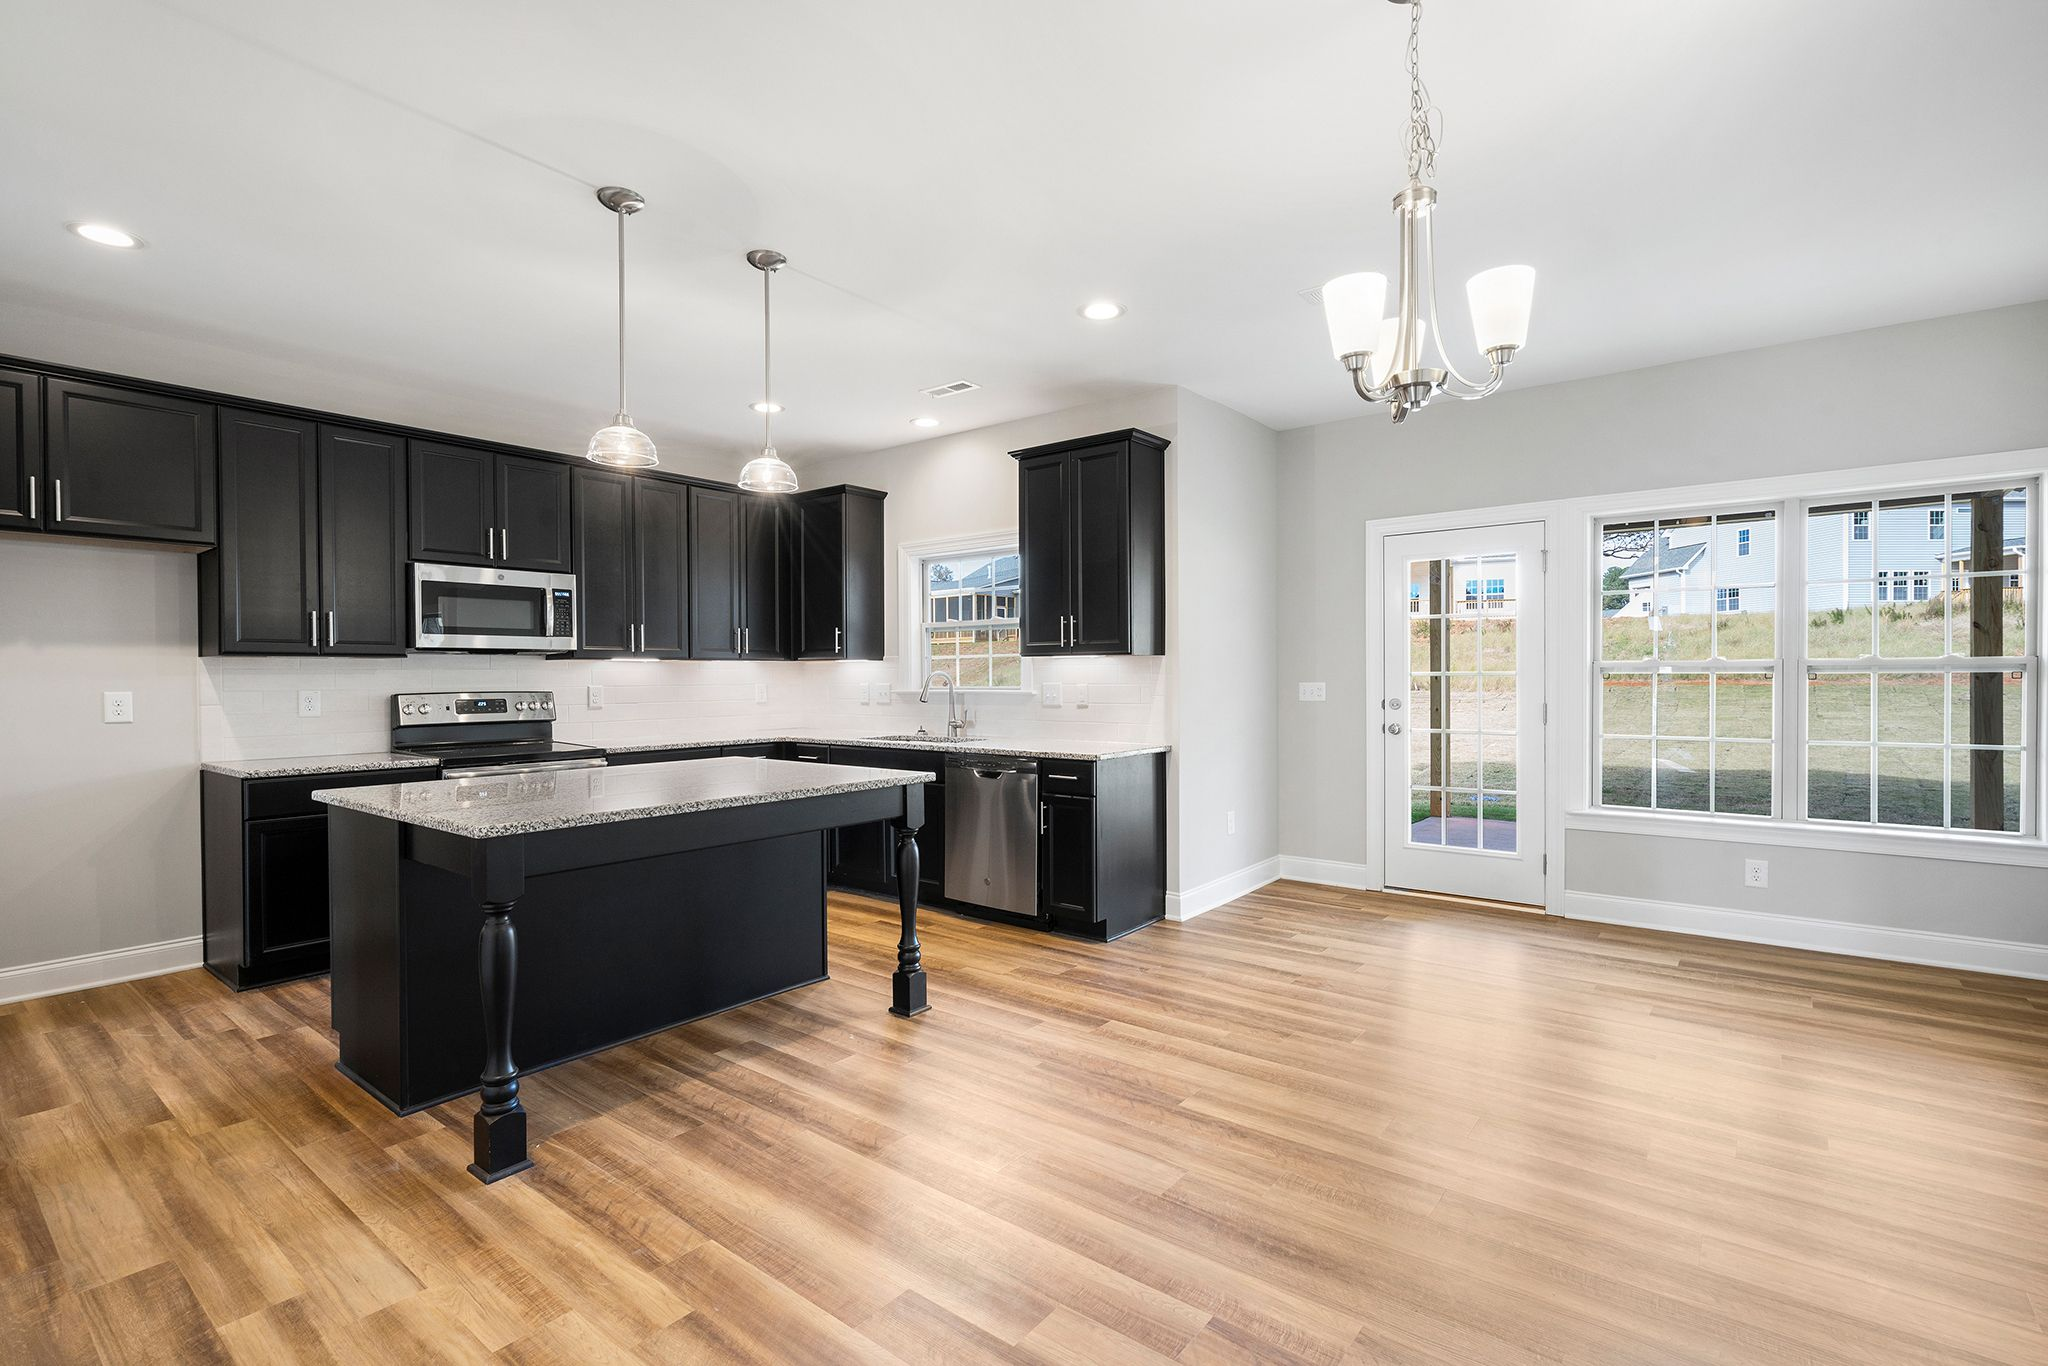 Kitchen-in-The Claremont-at-Southern Acres-in-Fuquay Varina